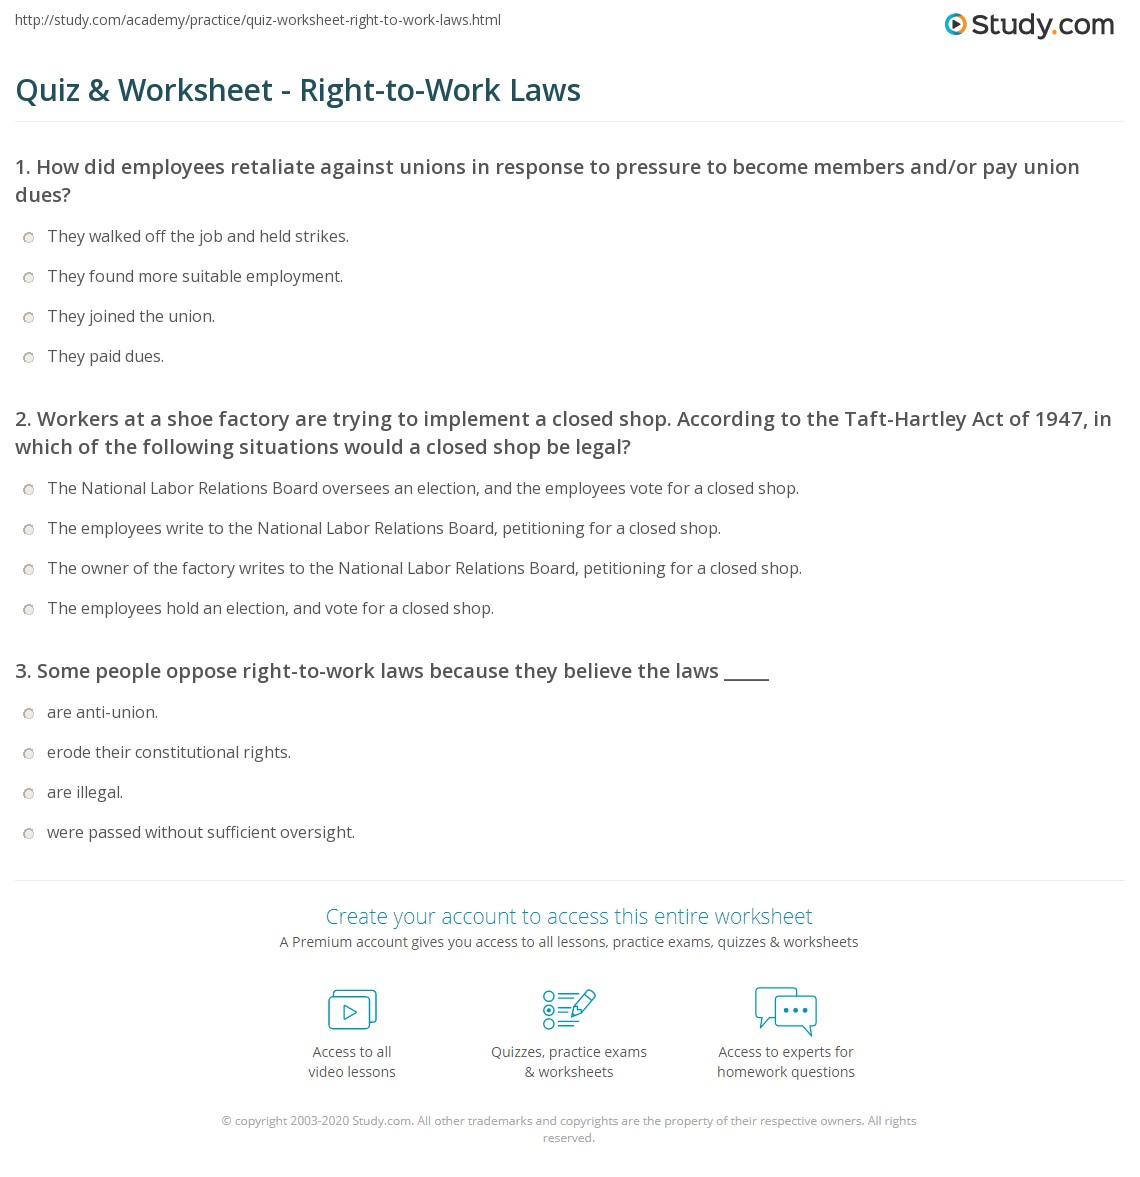 quiz & worksheet - right-to-work laws | study